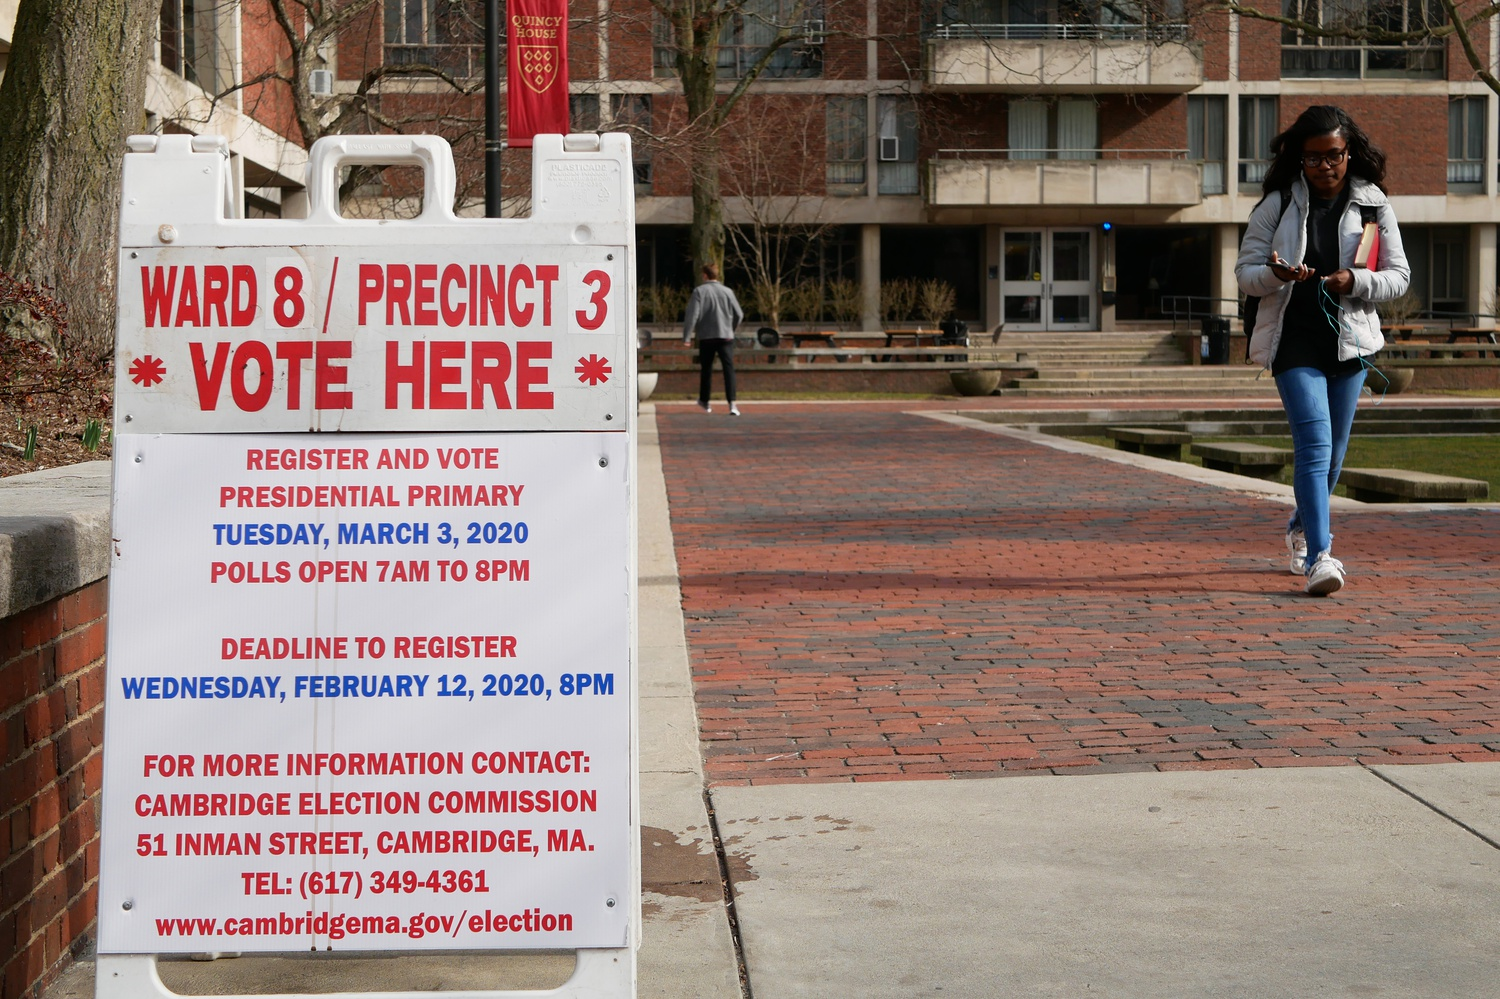 As presidential candidates drop out, their associated campus support groups close.